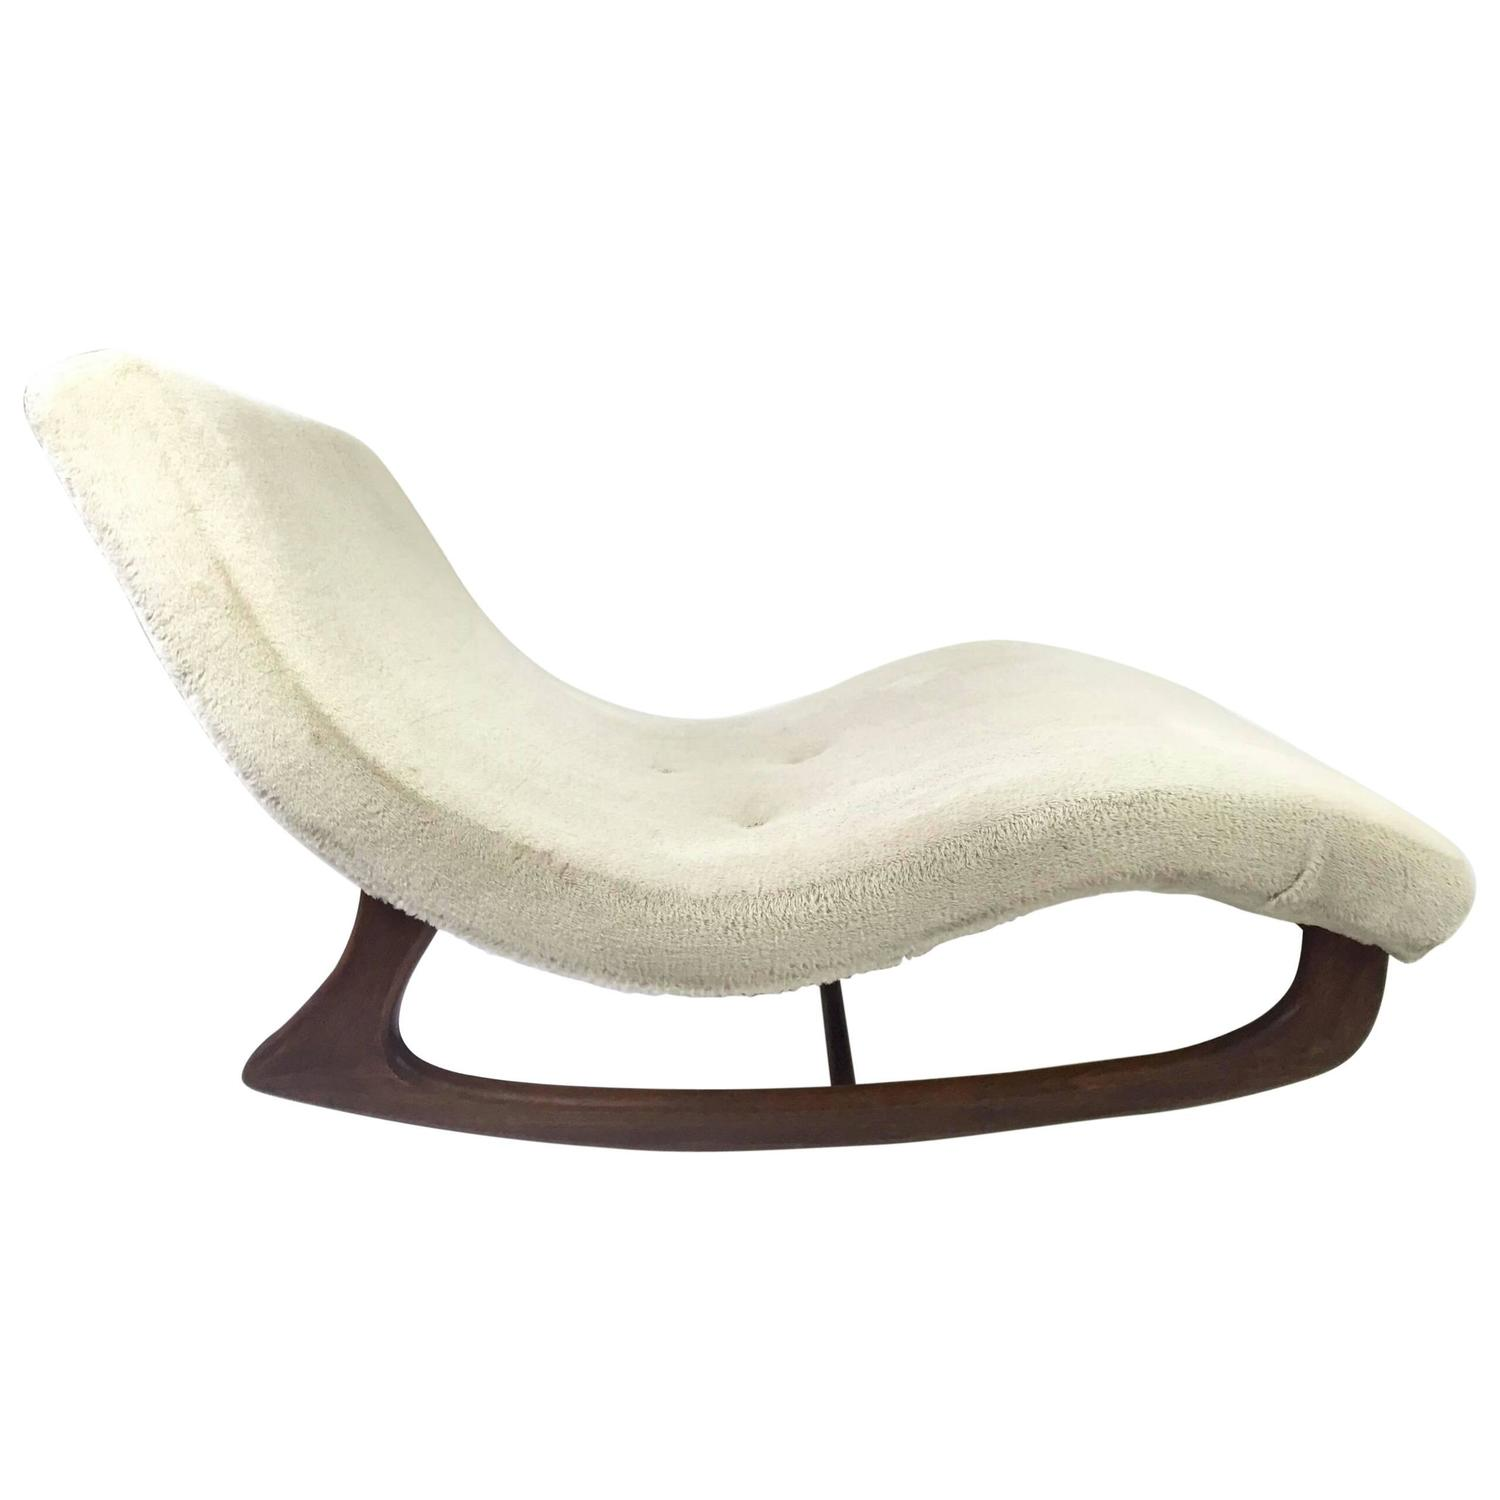 Adrian pearsall partners rocking chaise longue at 1stdibs for Adrian pearsall rocking chaise